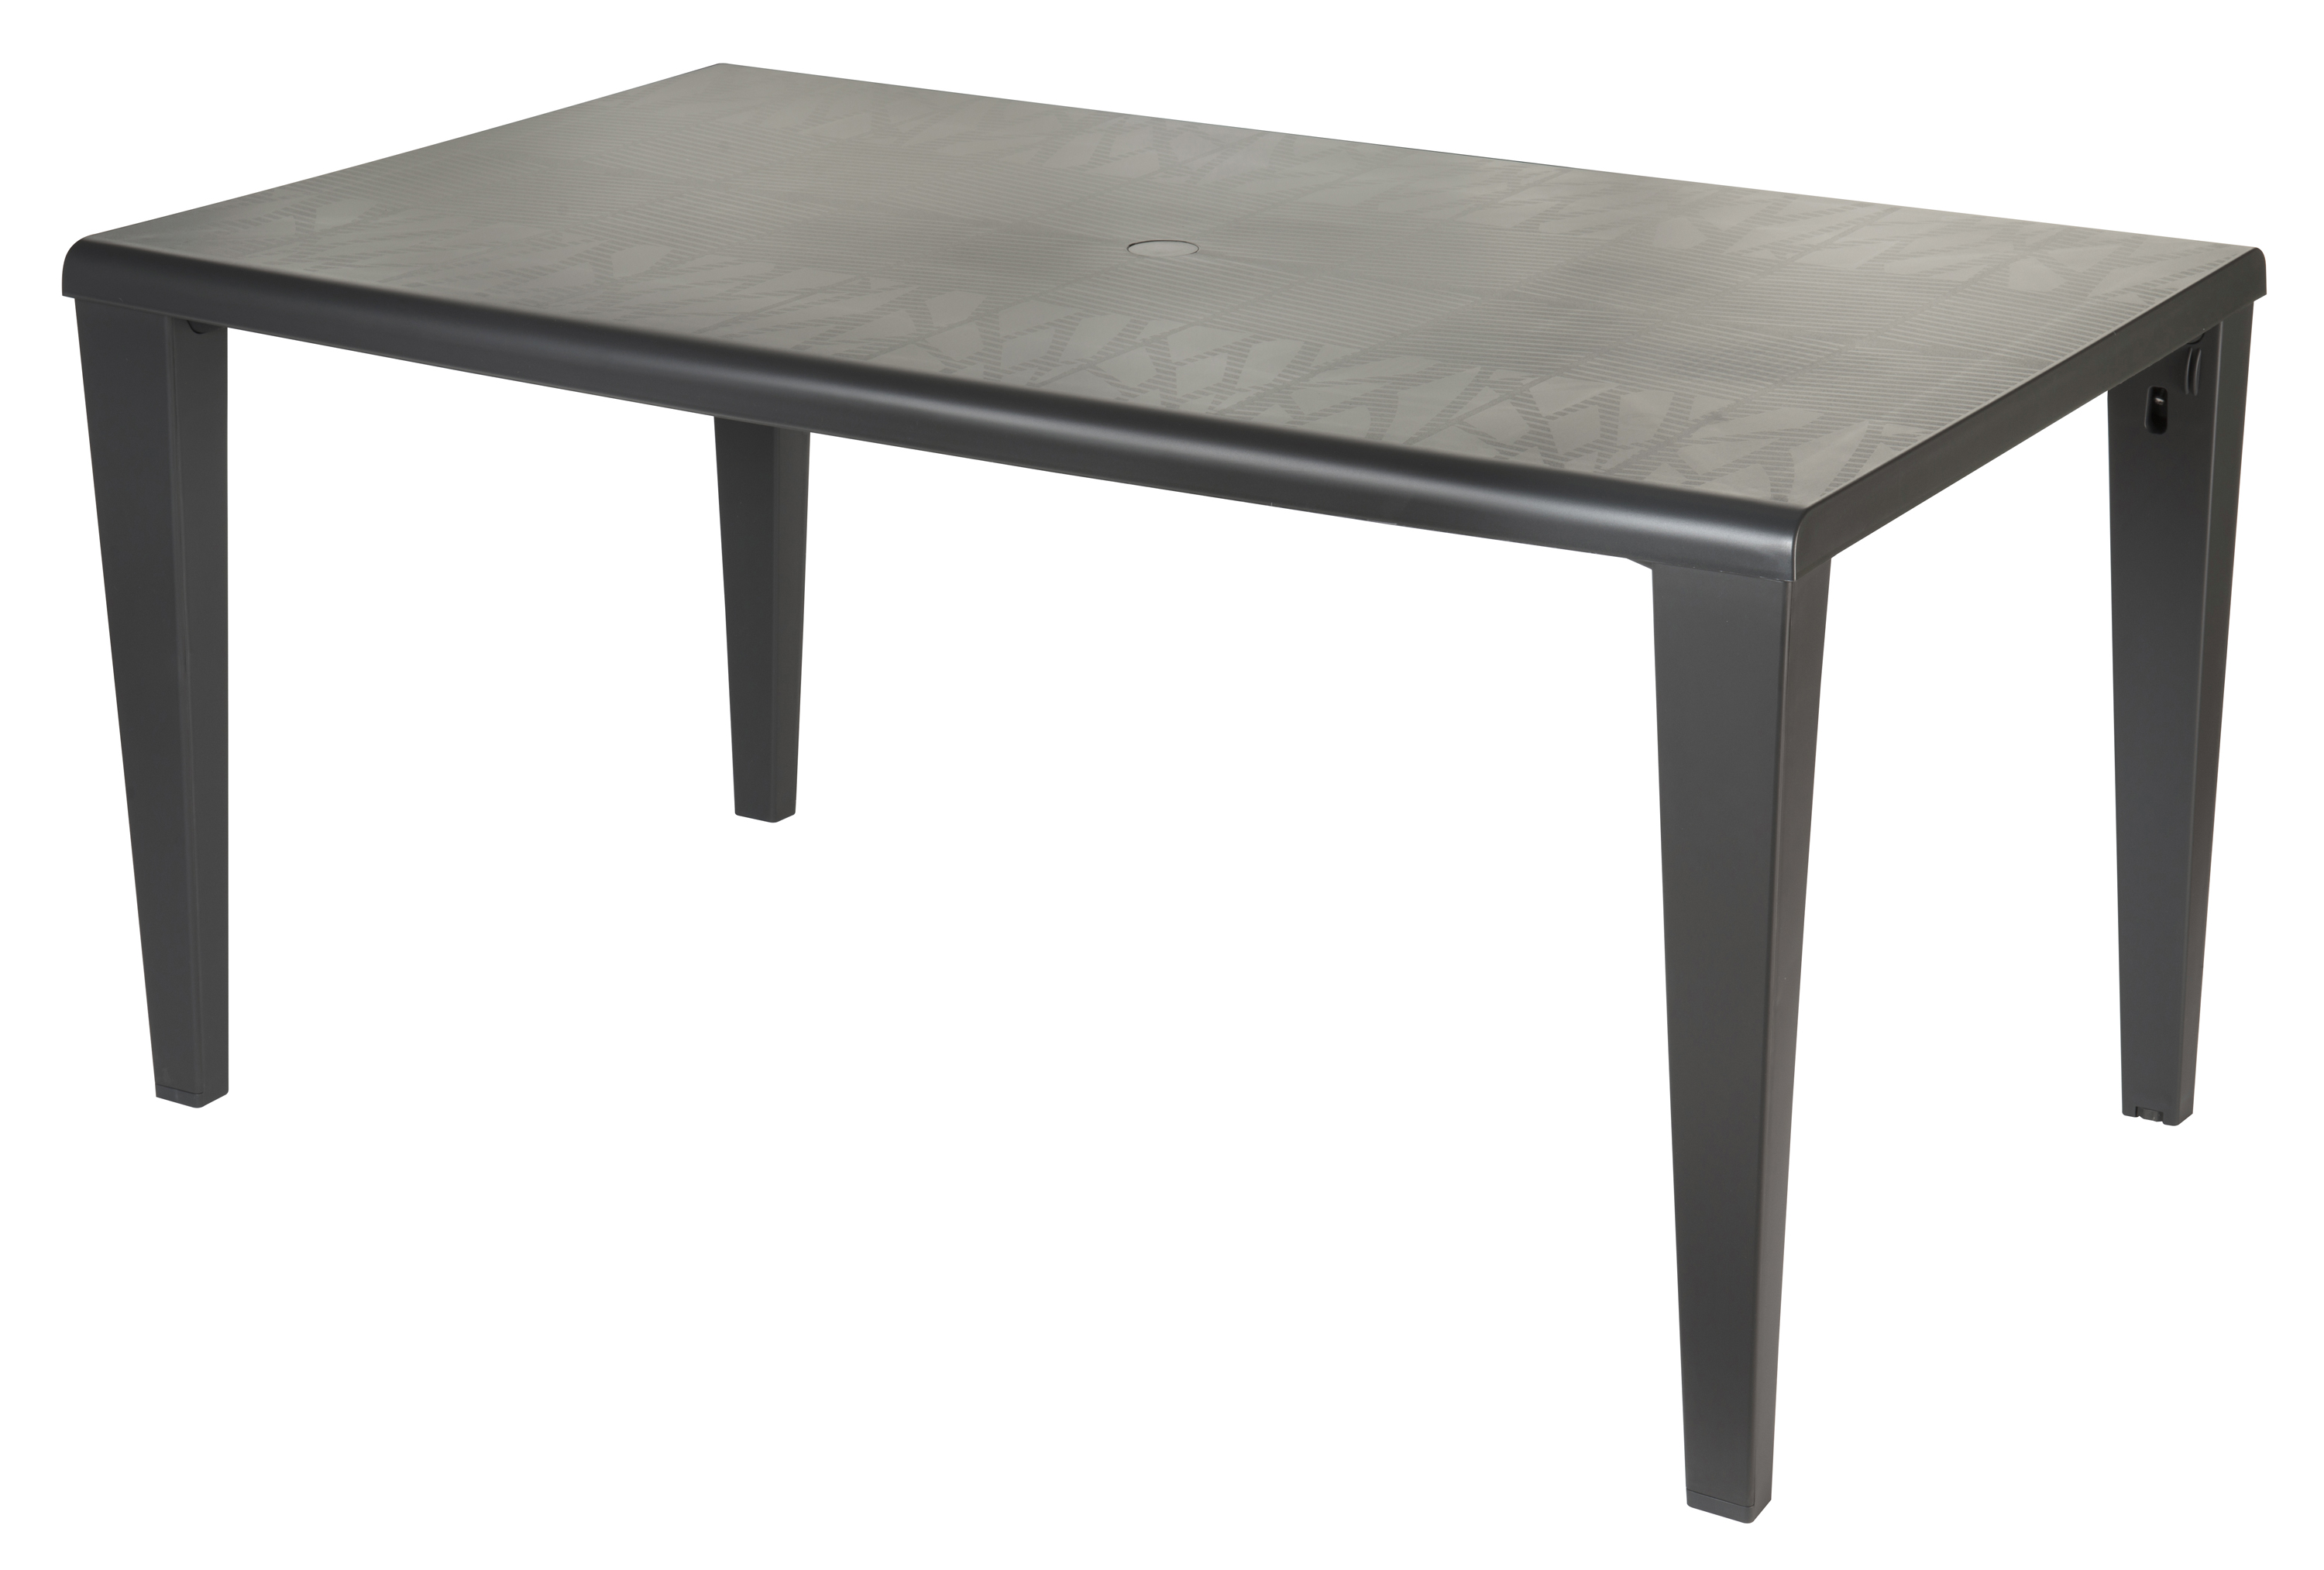 Alpha 150 & 240 garden tables | Grosfillex